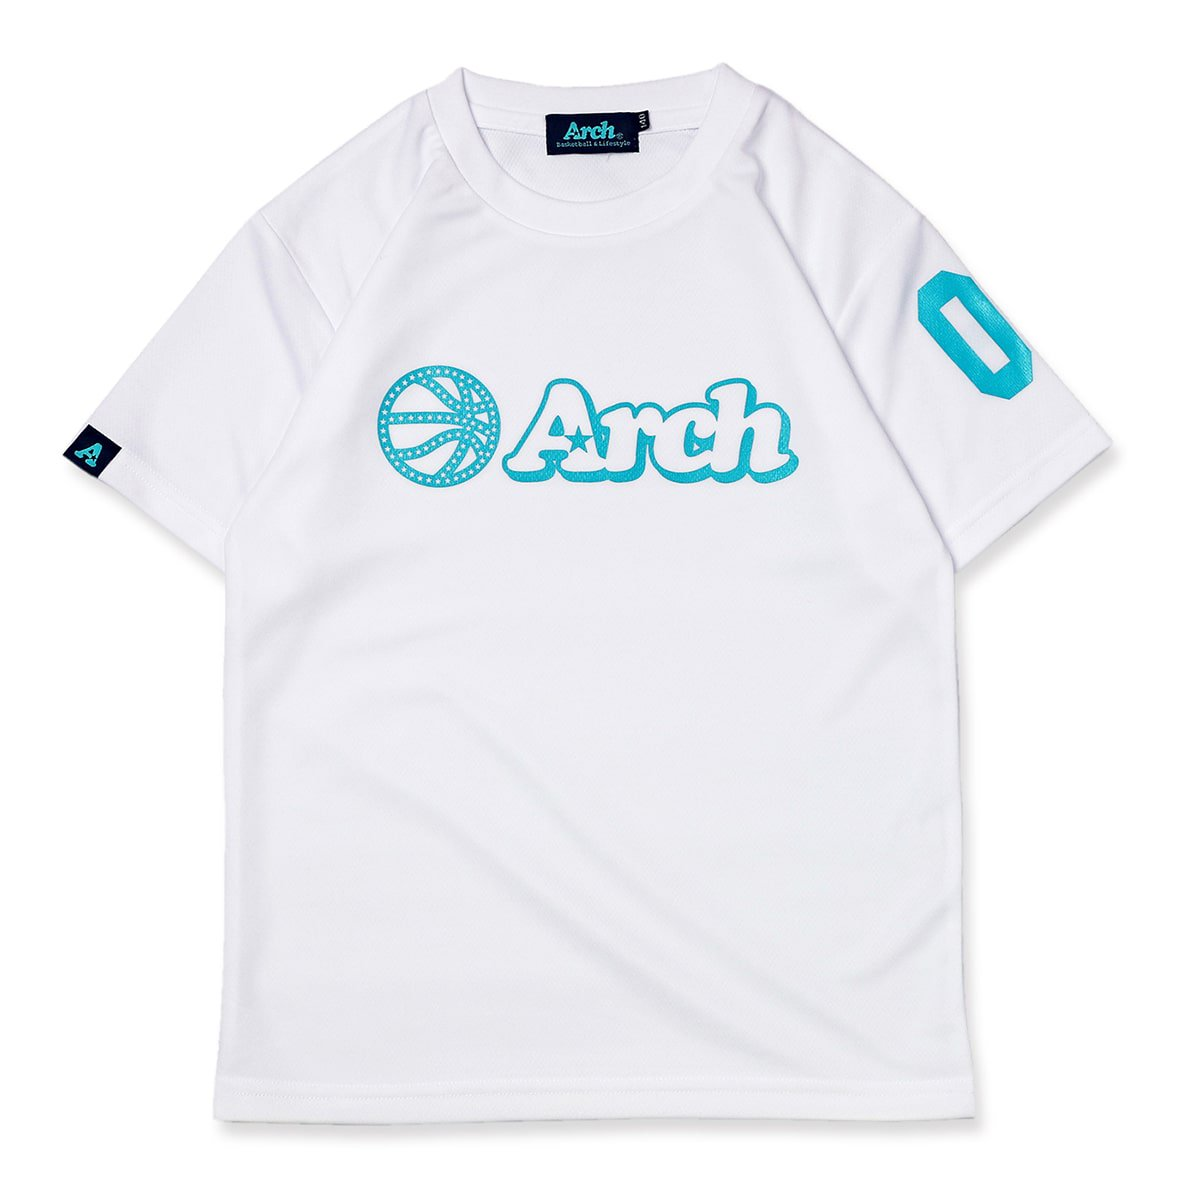 ball logo tee [DRY] [KIDS]【white/turquoise】